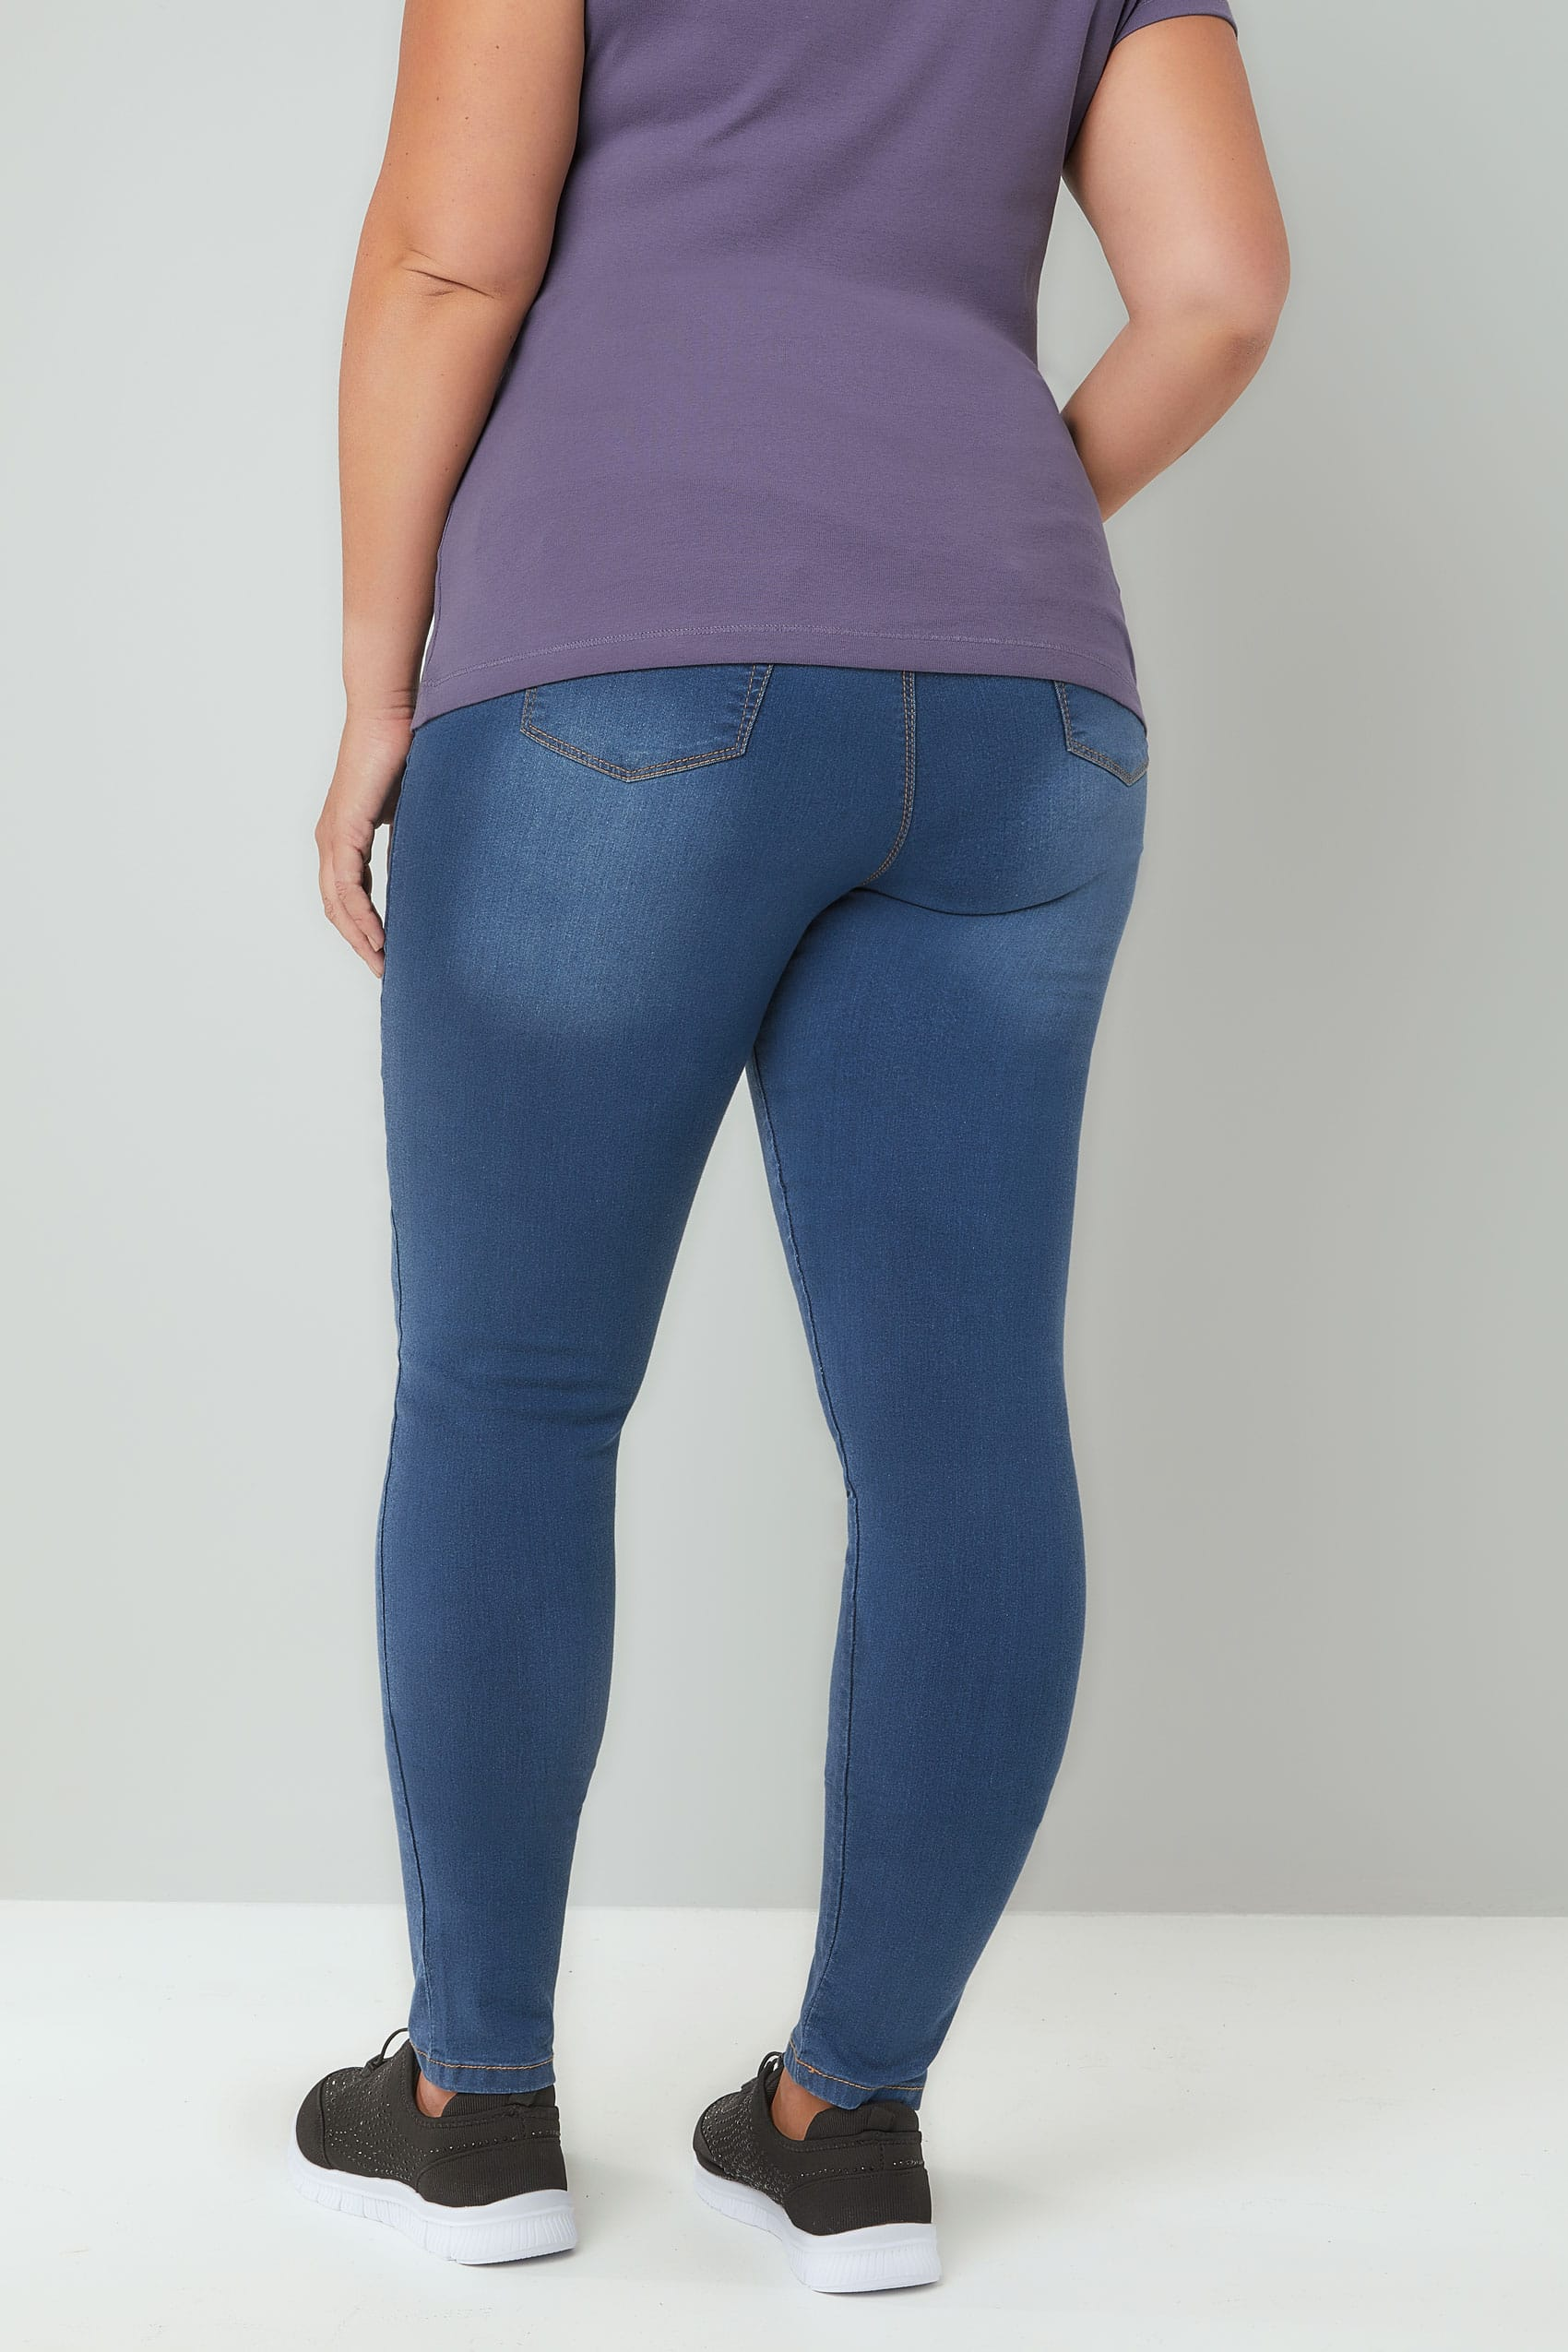 Blue Washed Pull On Stretch Shaper Jenny Jeggings Plus -3347